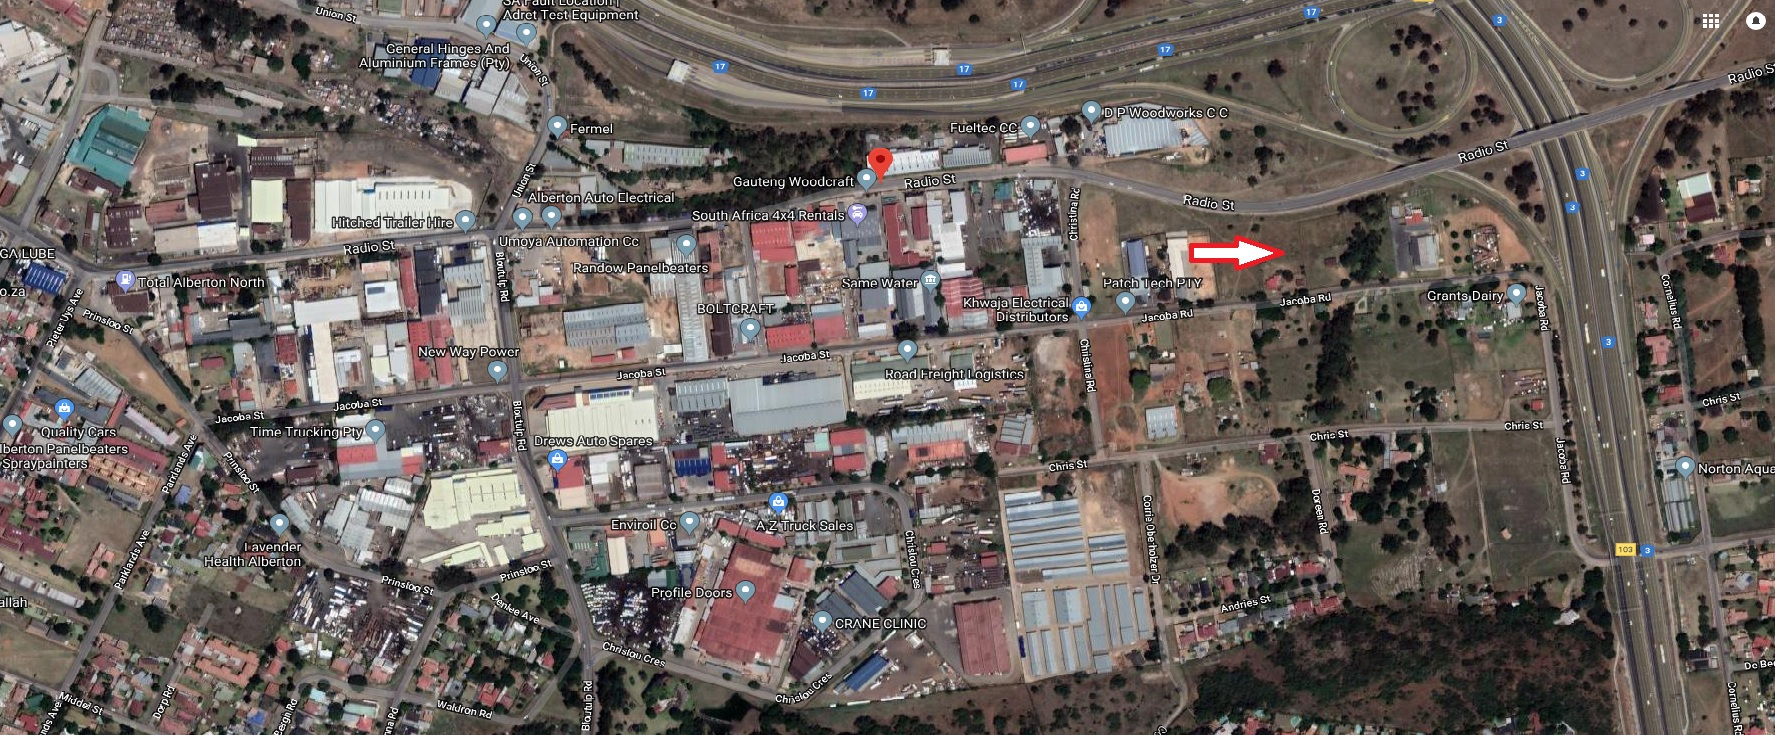 COMMERCIAL / INDUSTRIAL LAND FOR SALE, ALBERTON NORTH/ UNION!!!